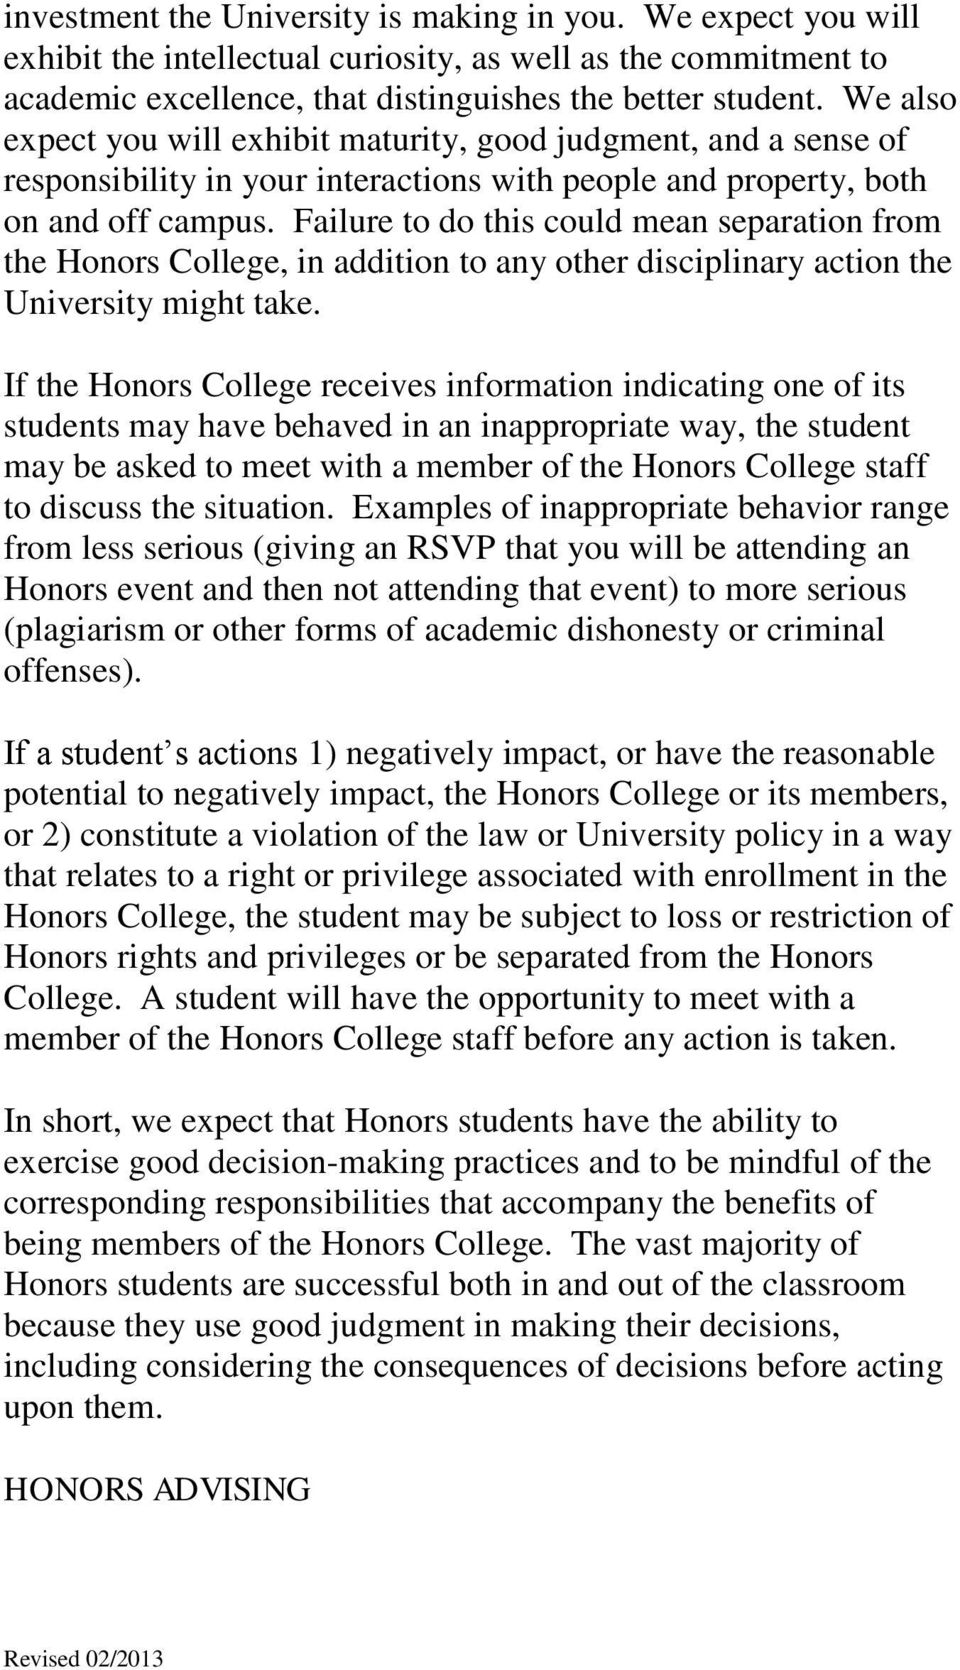 Failure to do this could mean separation from the Honors College, in addition to any other disciplinary action the University might take.